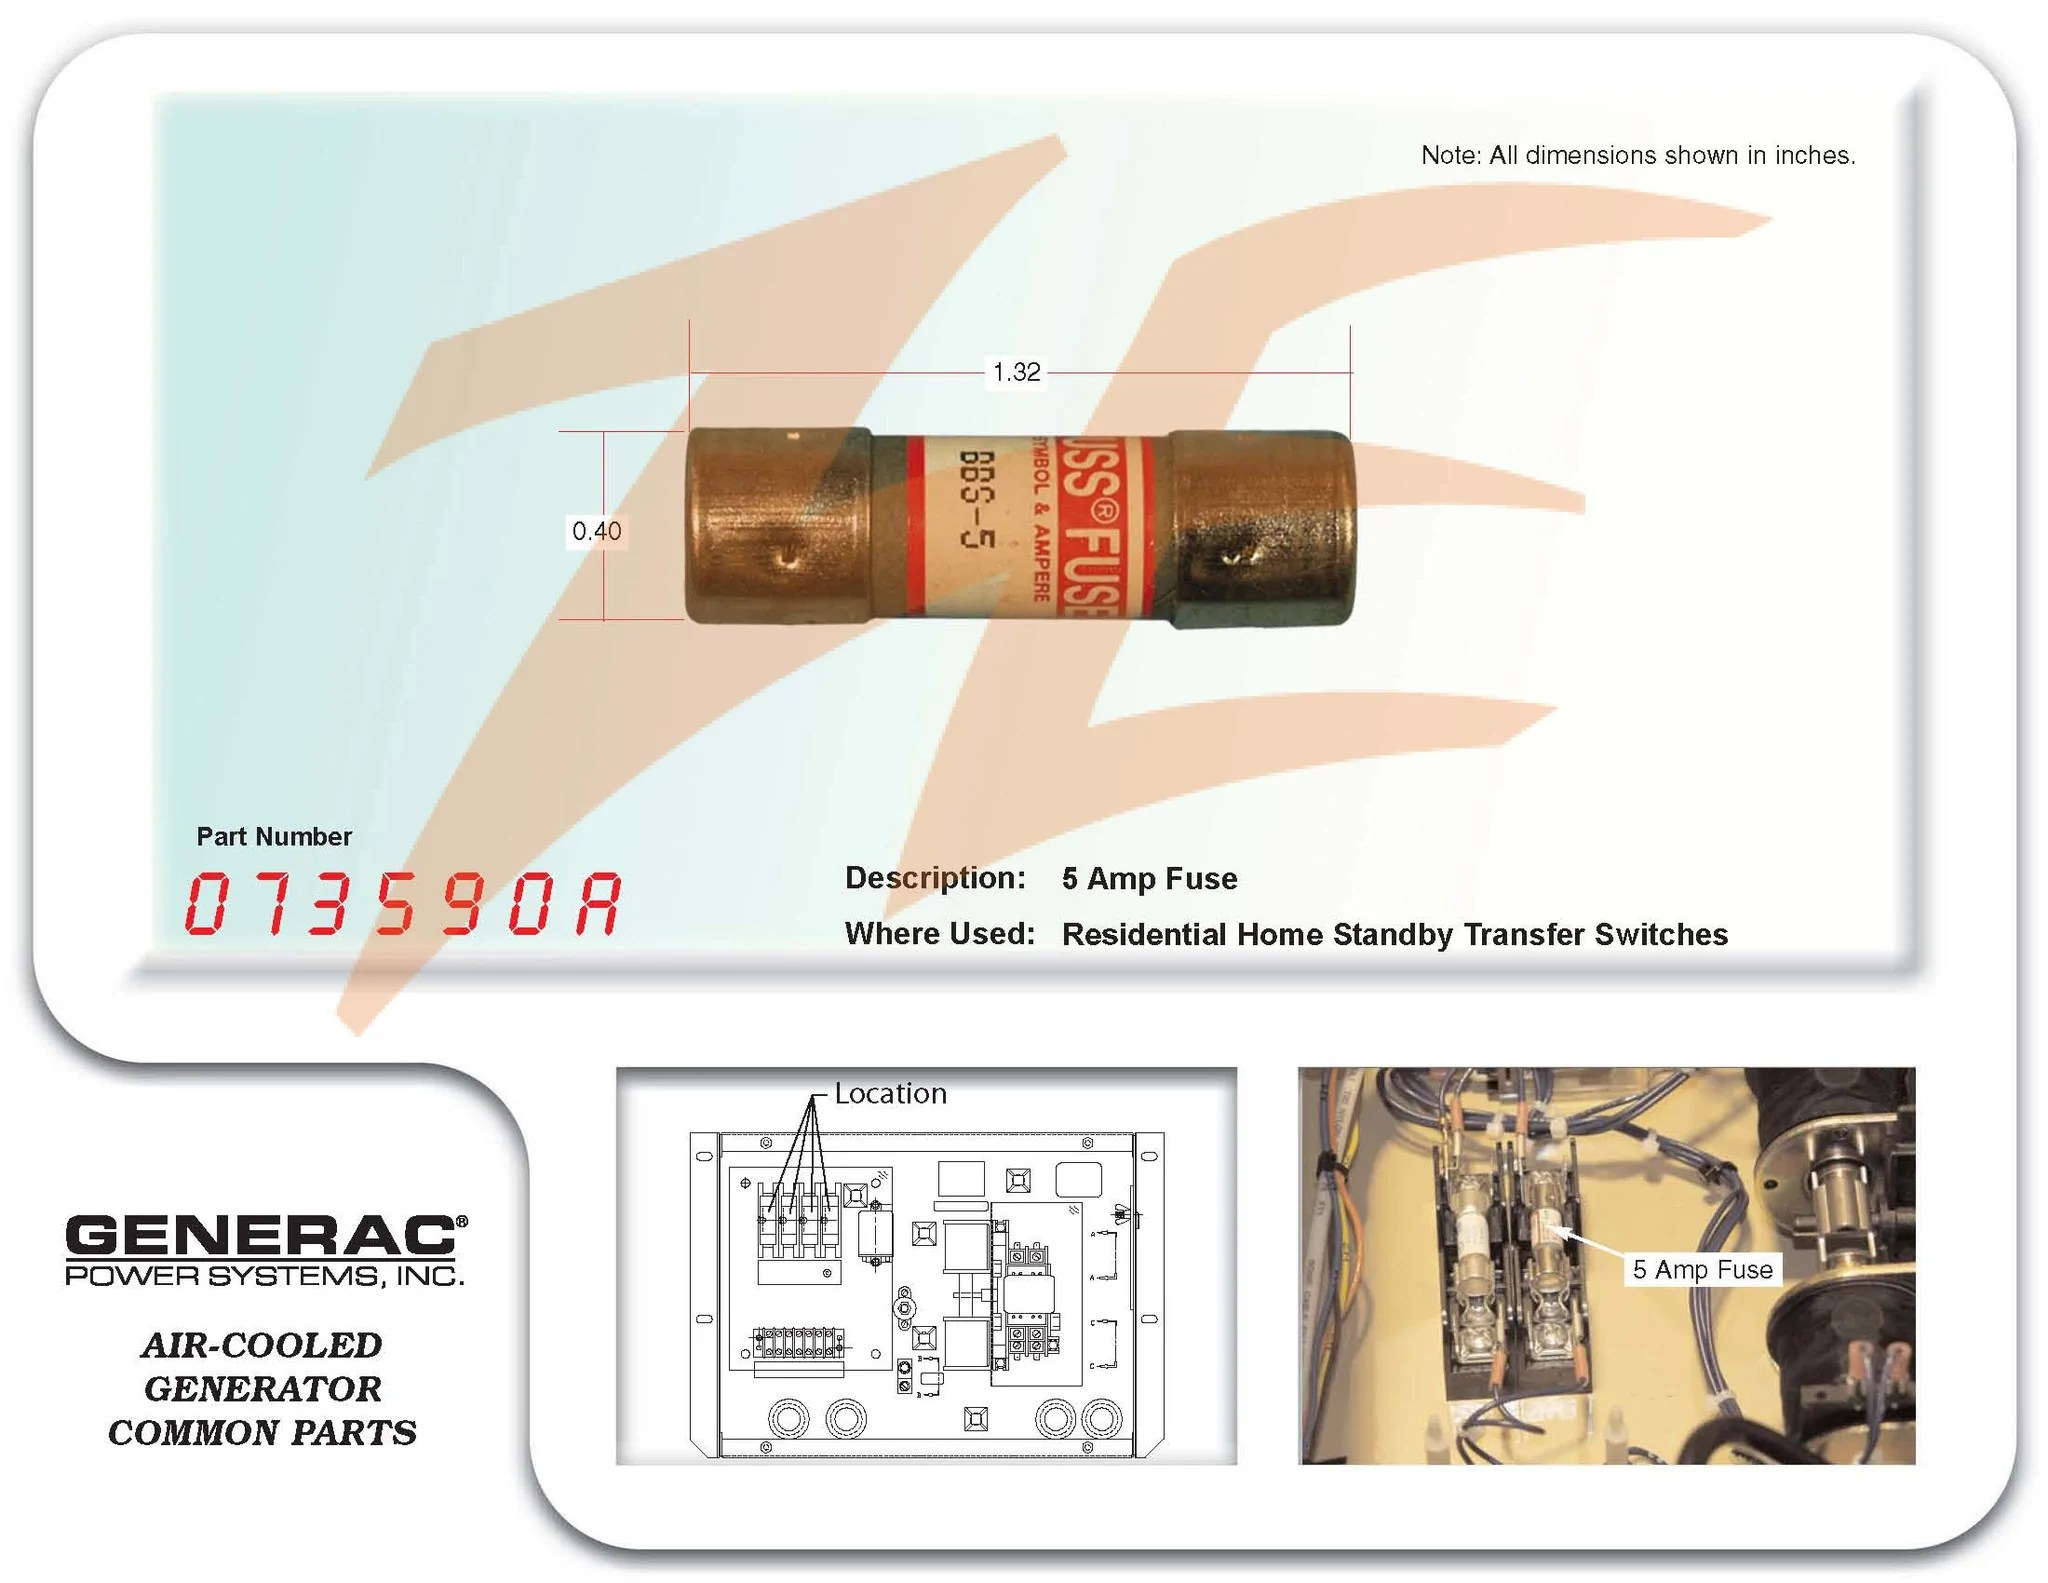 generac 073590a 5 amp buss fuse ziller electric home electrical box transfer switch fuse box [ 2048 x 1583 Pixel ]